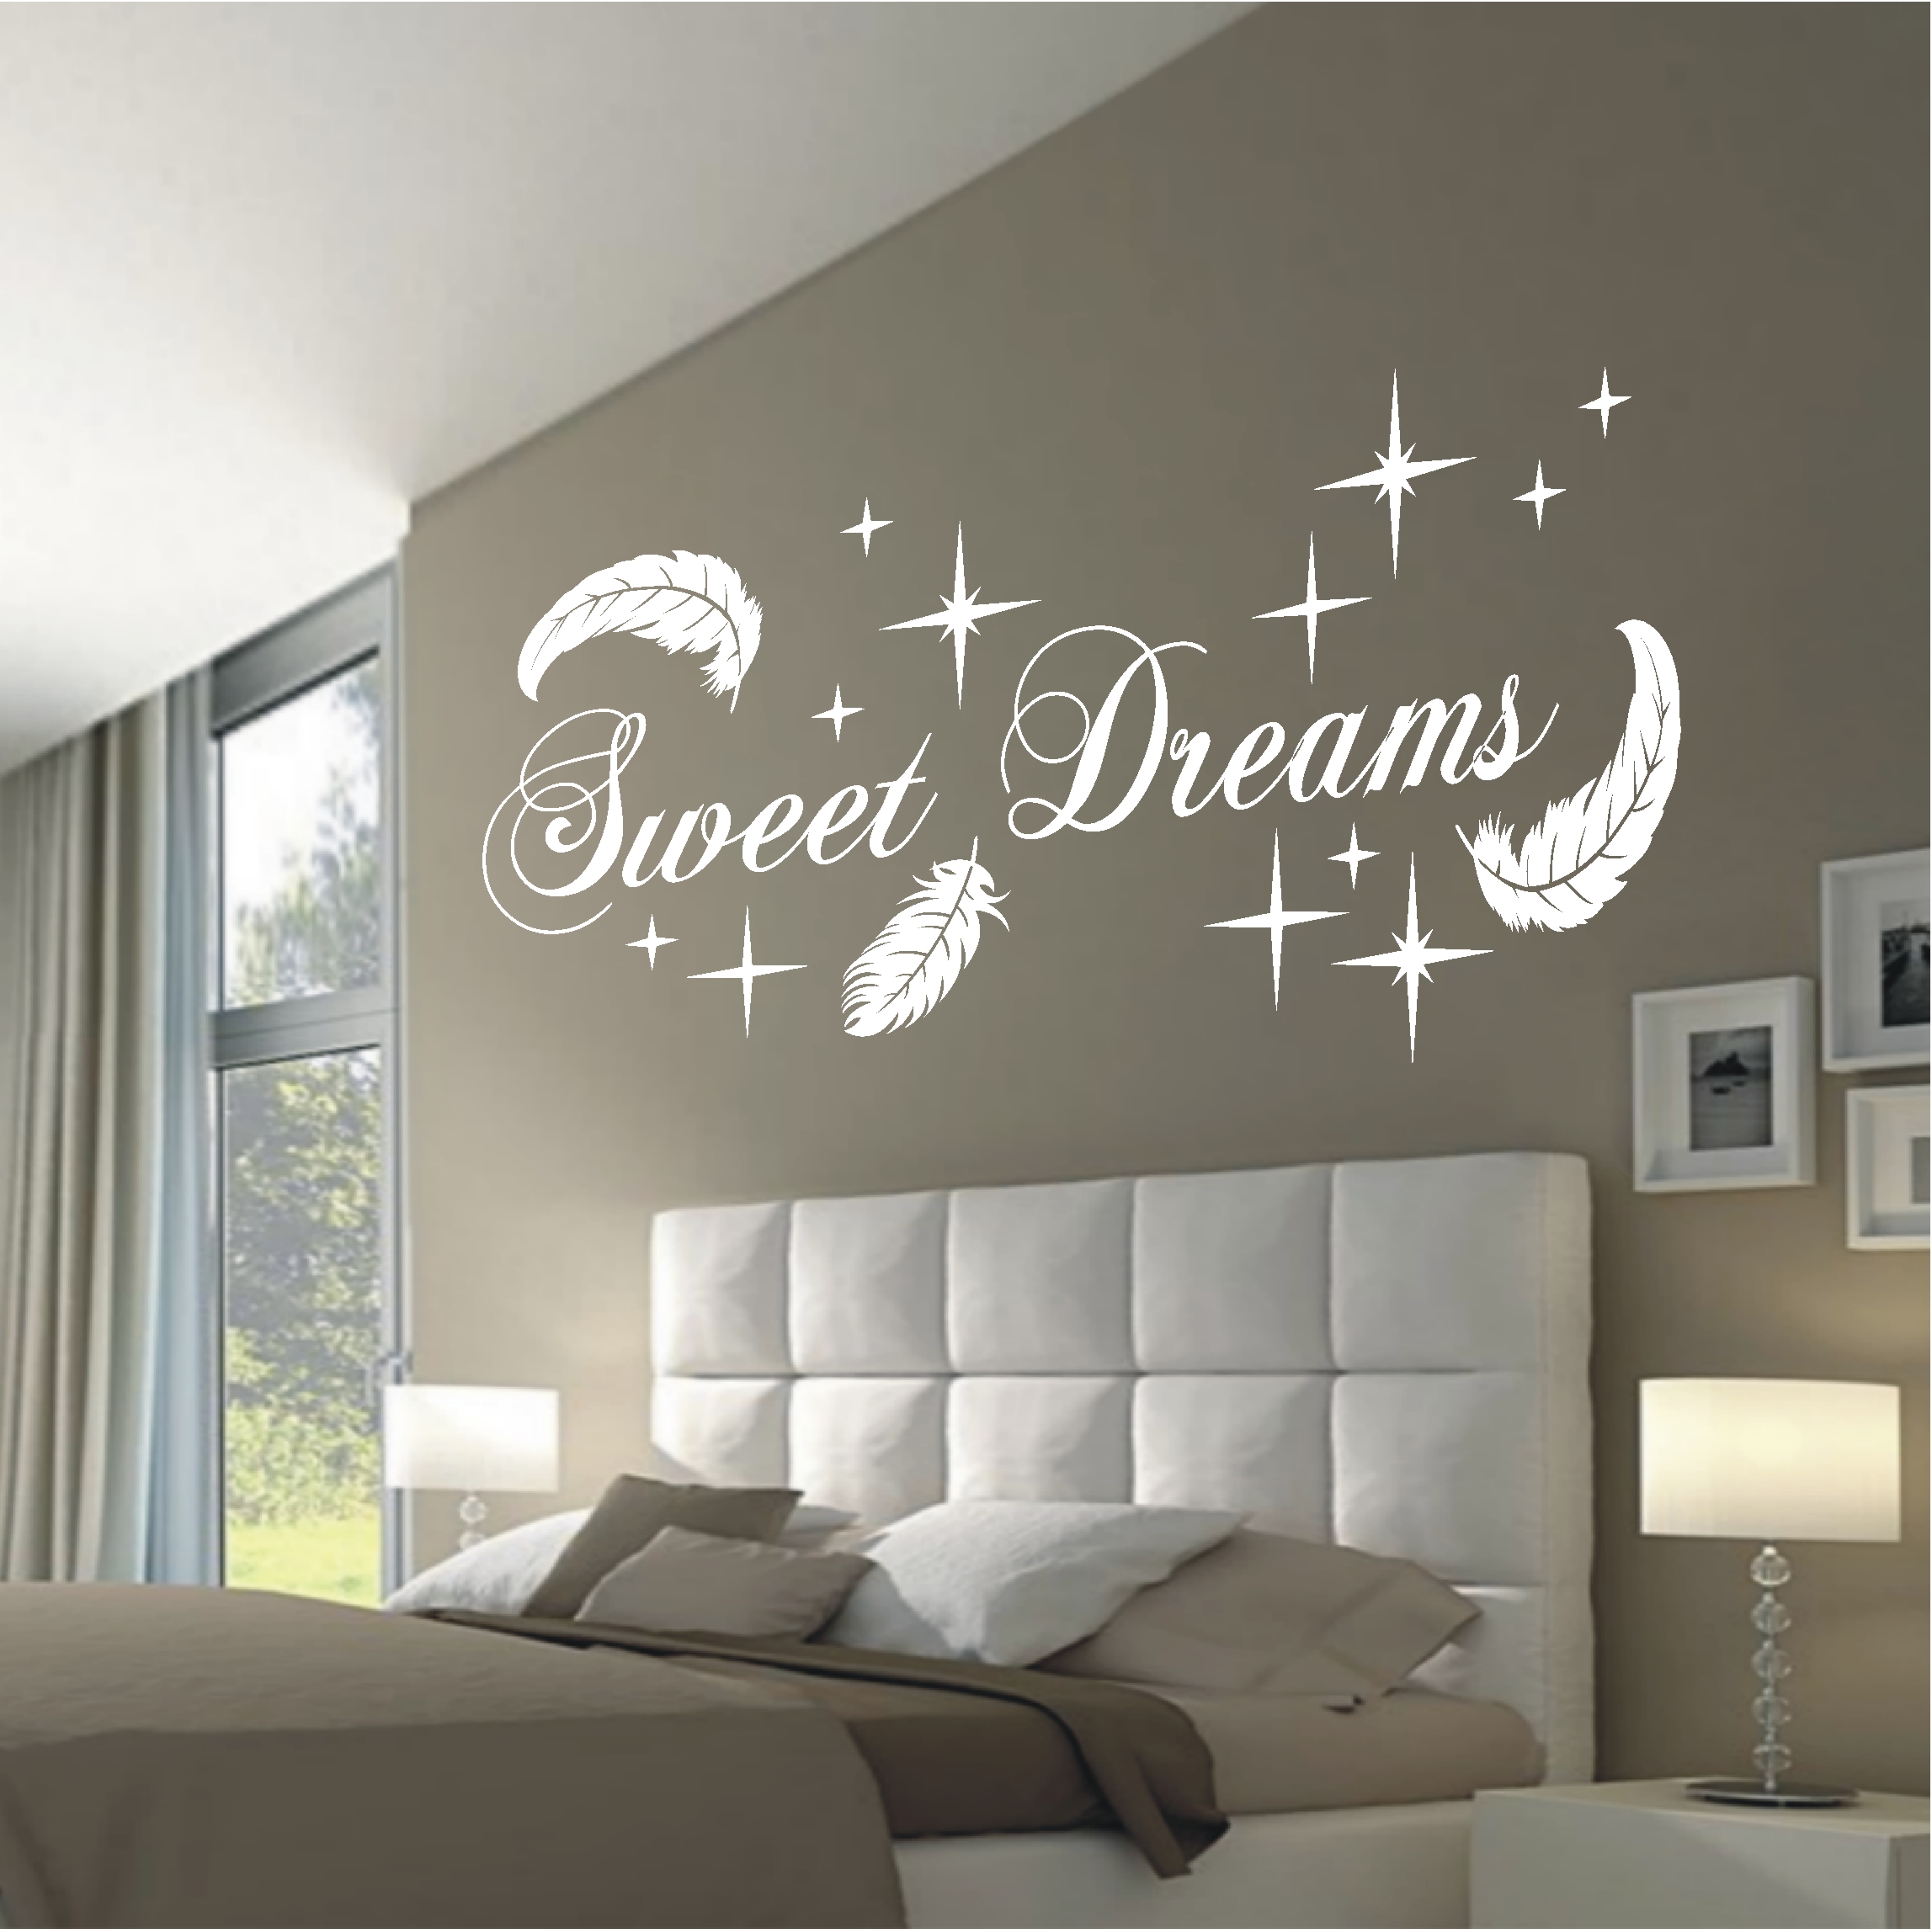 wandtattoo wandaufkleber sweet dreams federn deko schlafzimmer flur motiv 767 xl ebay. Black Bedroom Furniture Sets. Home Design Ideas